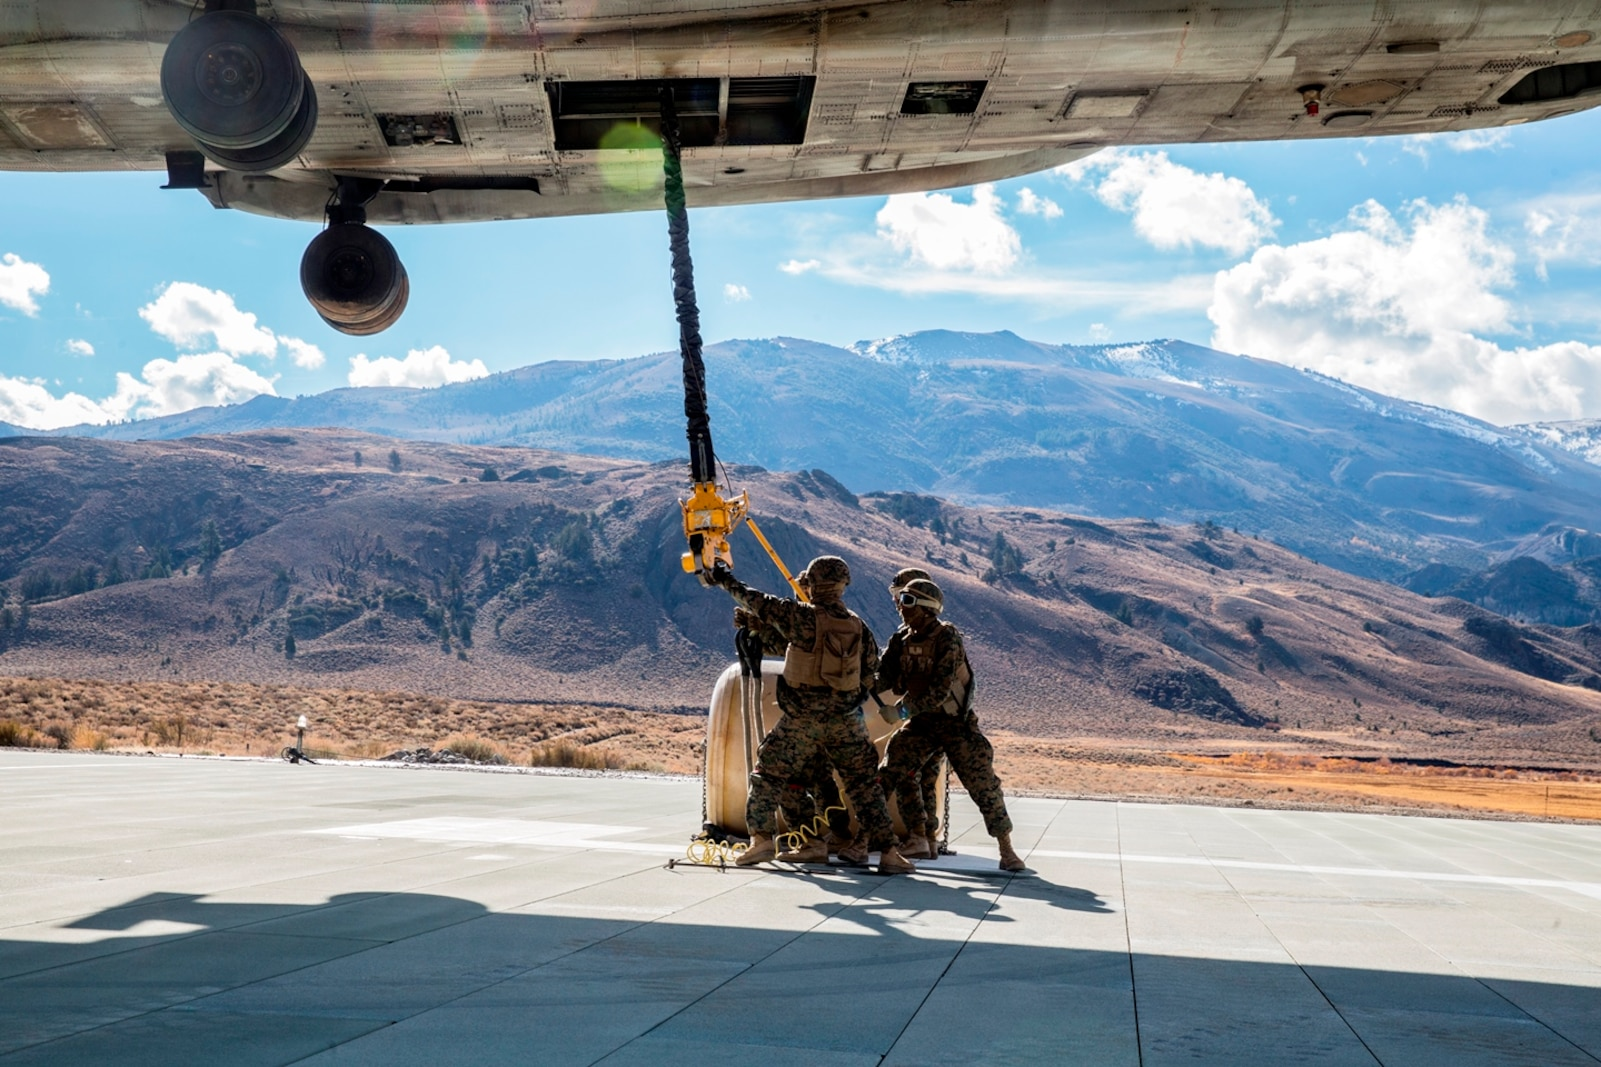 U.S. Marines with Combat Logistics Battalion 15, 1st Marine Logistics Group, and 3rd Battalion, 4th Marine Regiment, 1st Marine Division, grab a hook lowered by a CH-53E Super Stallion, with Marine Heavy Helicopter Squadron 466, to pick up a 500-gallon drum of water during a Helicopter Support Team drill at Mountain Warfare Training Center, Bridgeport, Calif., Oct. 25, 2016. The Marines use a pole to grab the hook lowered by the helicopter to ground the electrical currents before grabbing it by hand. The drum was taken into the Sierra Mesa Mountains to support Marines who are conducting field operations during Mountain Exercise 6-16. (U.S. Marine Corps photo by Lance Cpl. Adam Dublinske)